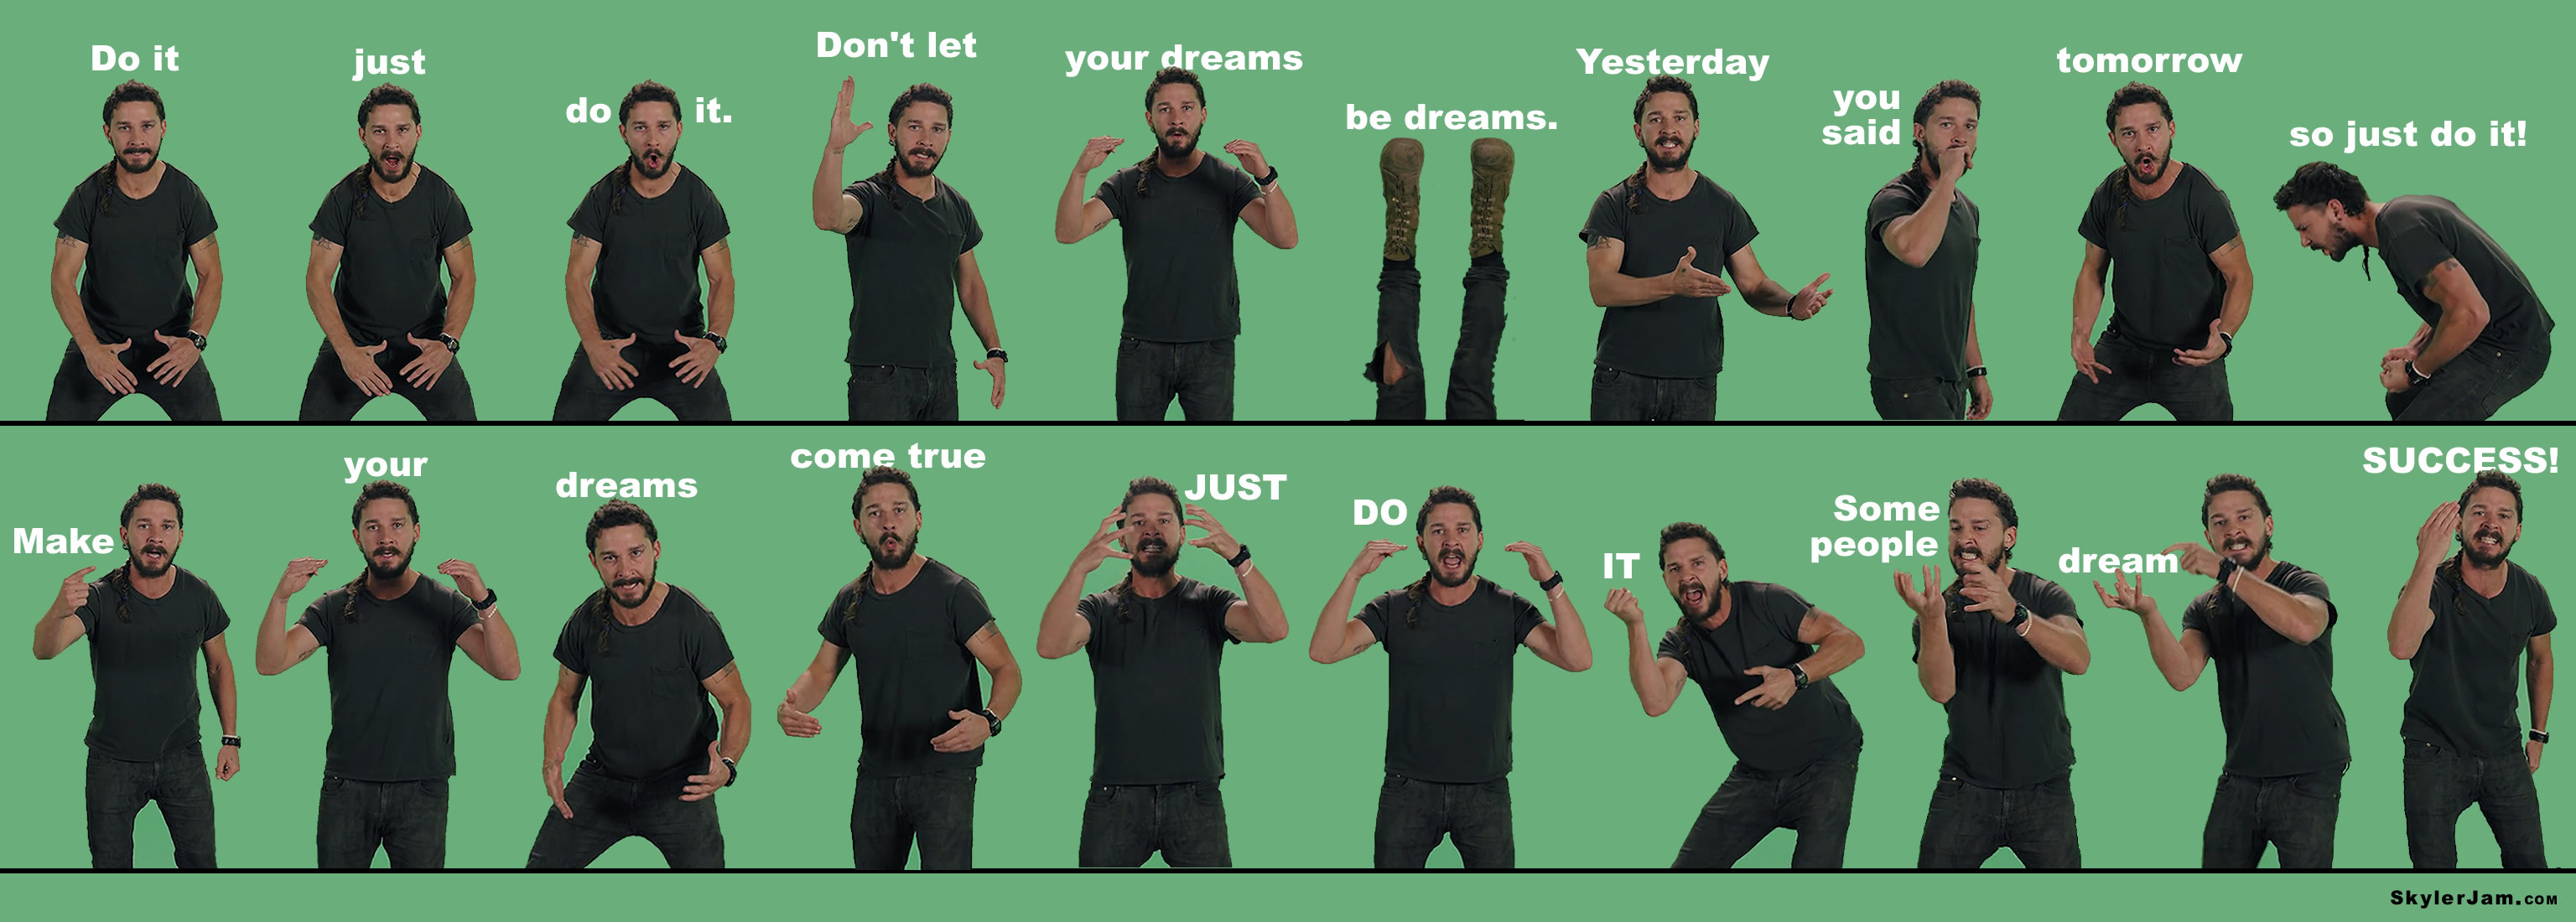 Just Do It Quote Wallpaper Shia Shia Labeouf Just Do It Wallpaper 69 Images